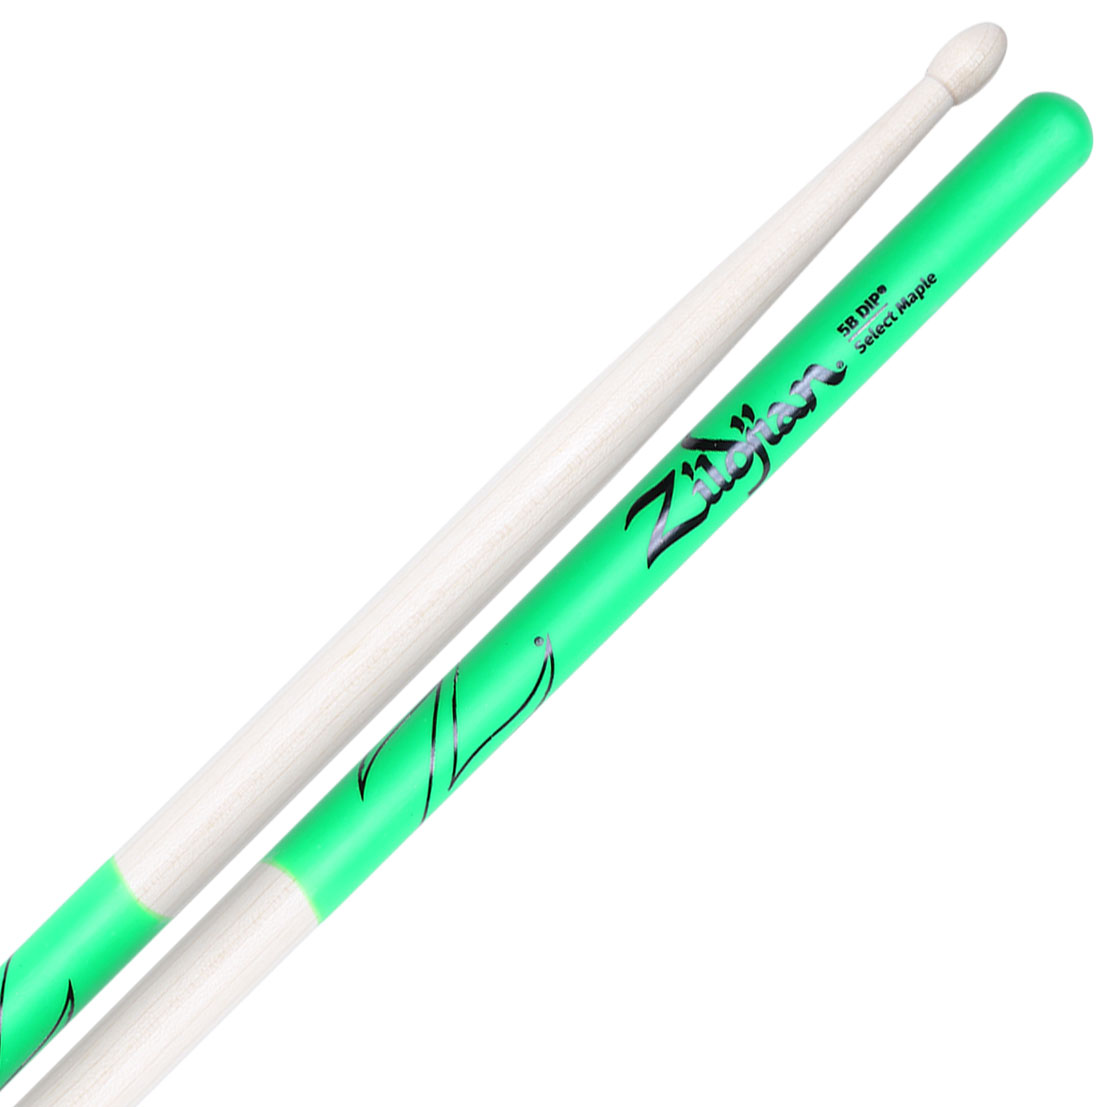 Zildjian Select Maple 5B Green DIP Drumsticks